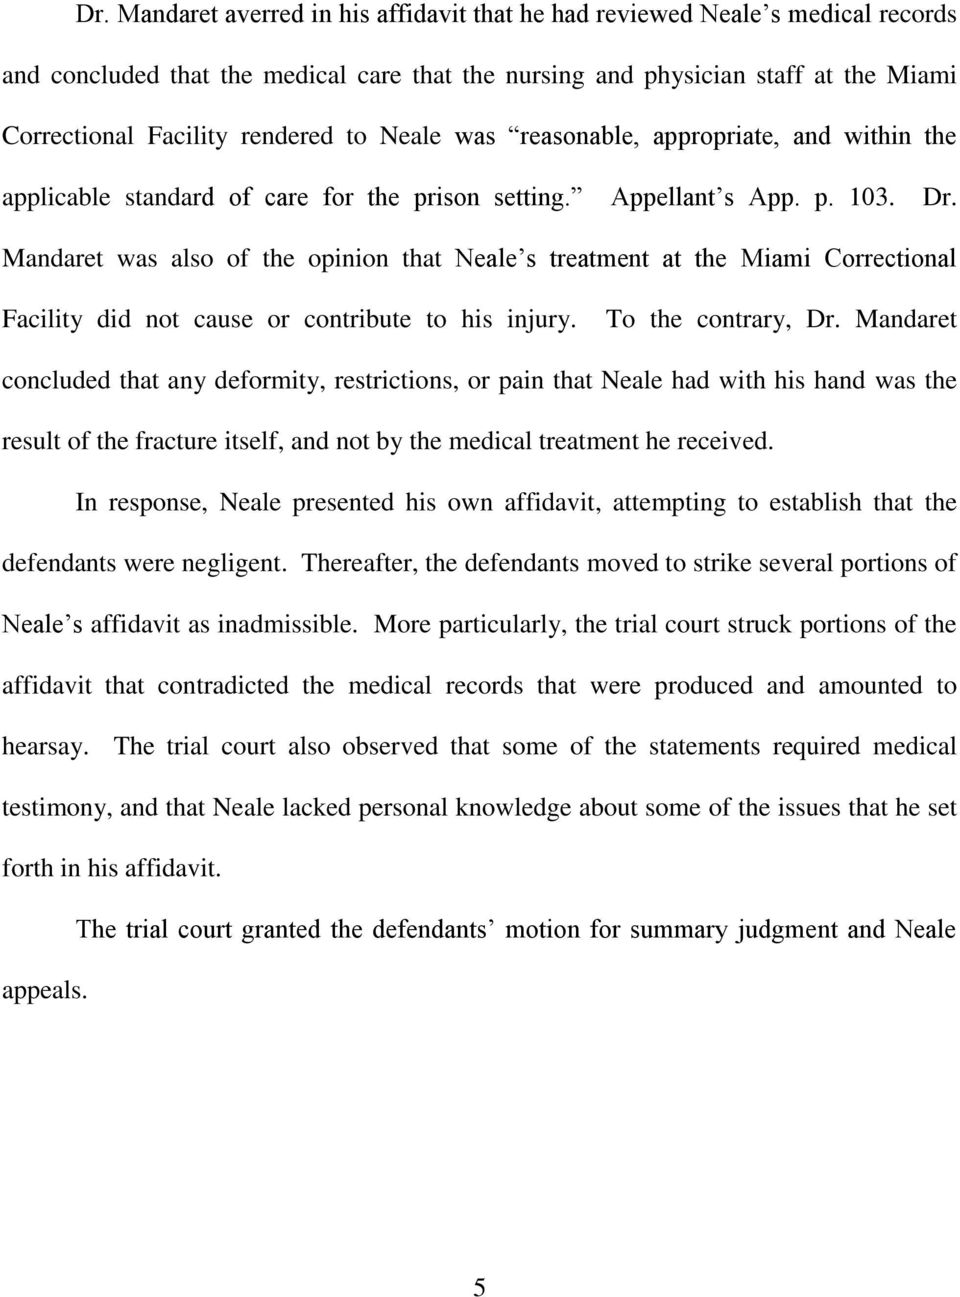 Mandaret was also of the opinion that Neale s treatment at the Miami Correctional Facility did not cause or contribute to his injury. To the contrary, Dr.